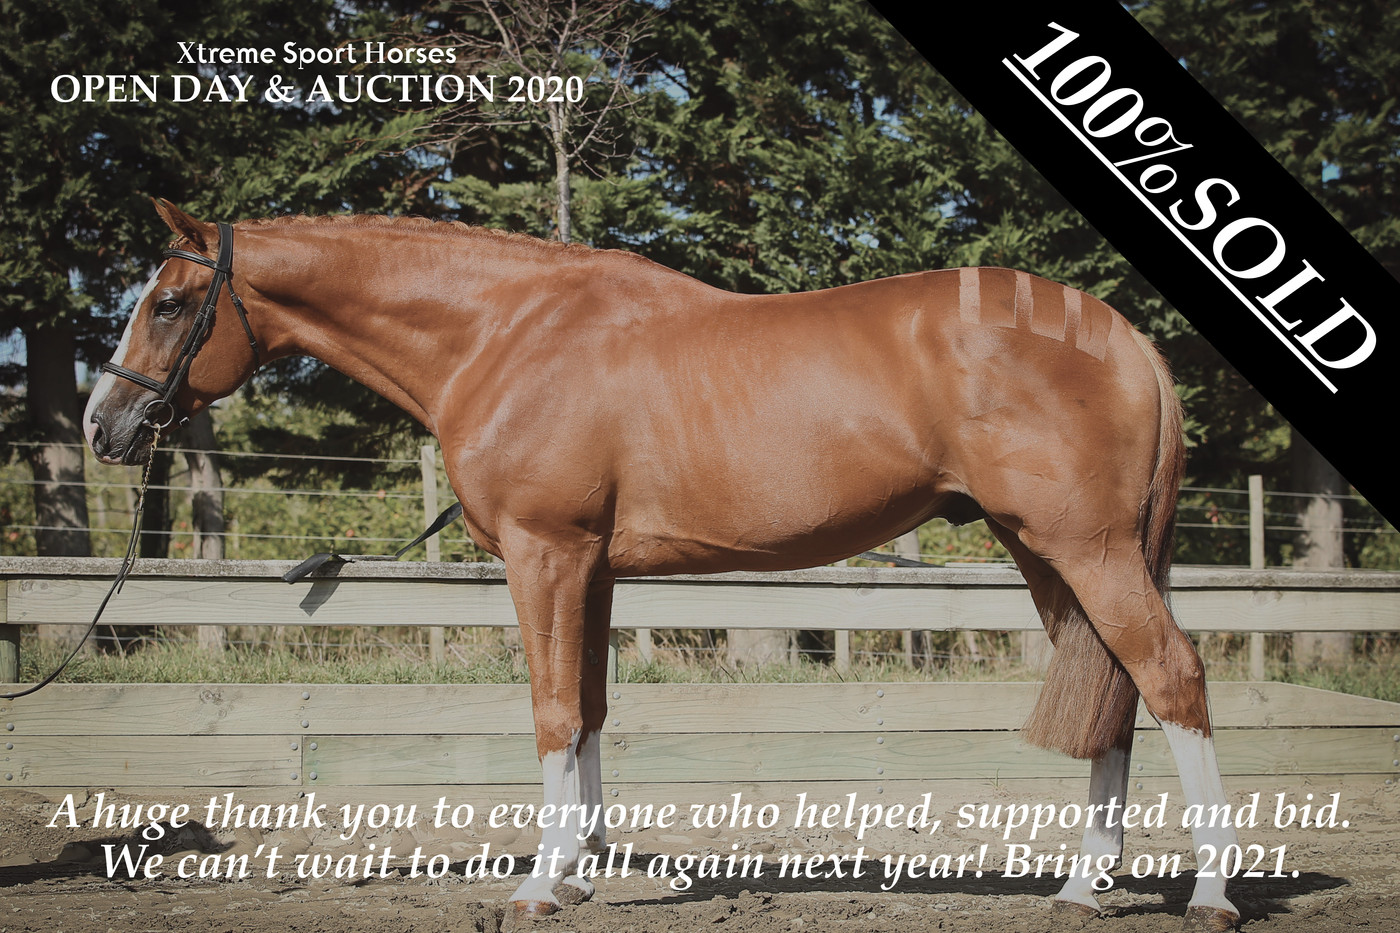 Online Auction for Xtreme Sport Horses.